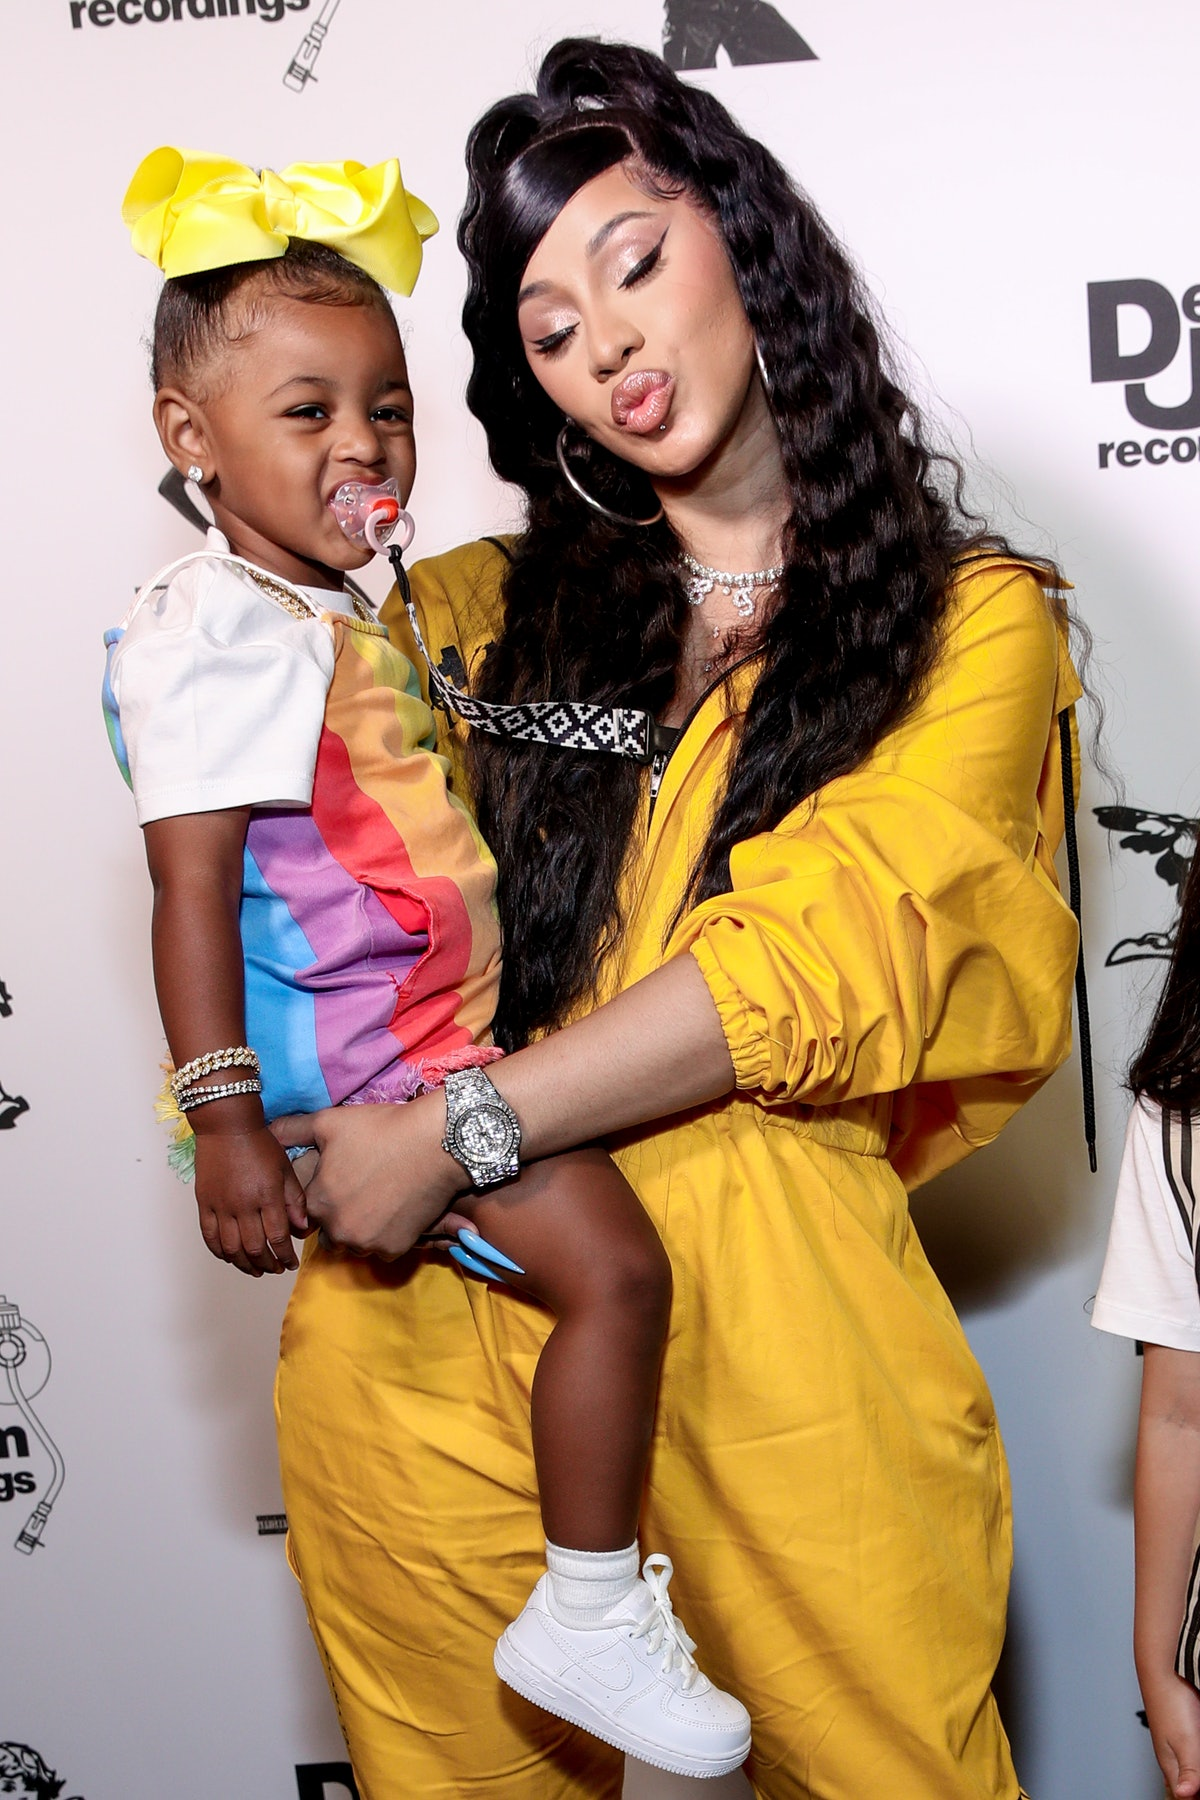 Cardi B attends an event for Def Jam with daughter Kulture.